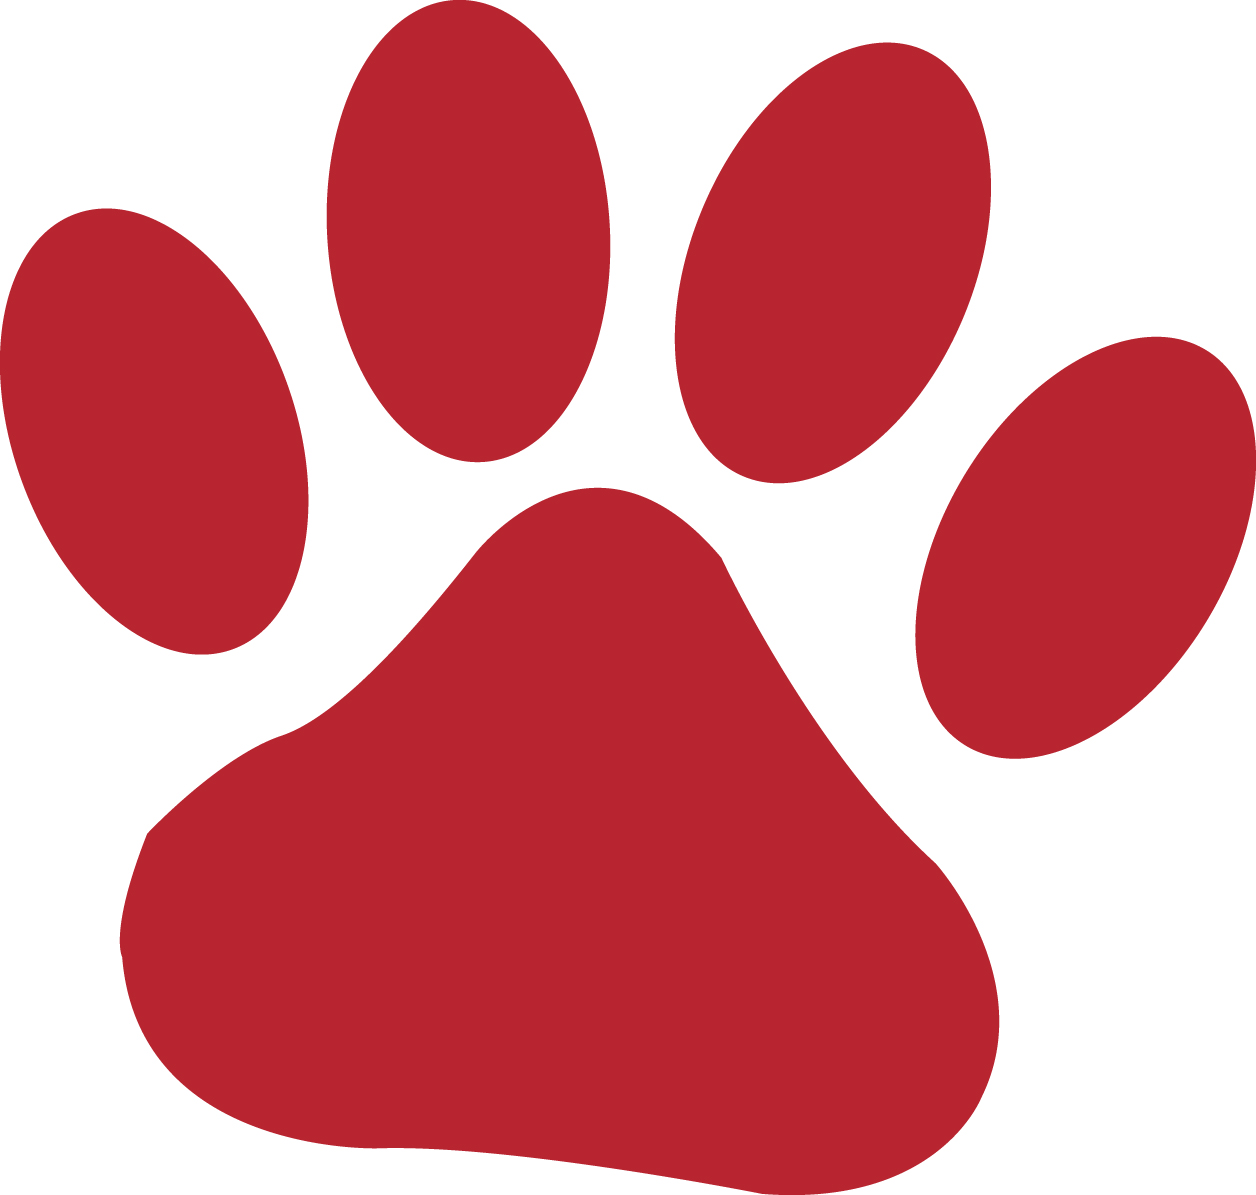 Paw print clipart jpeg graphic royalty free Paw print clipart jpeg - ClipartFest graphic royalty free